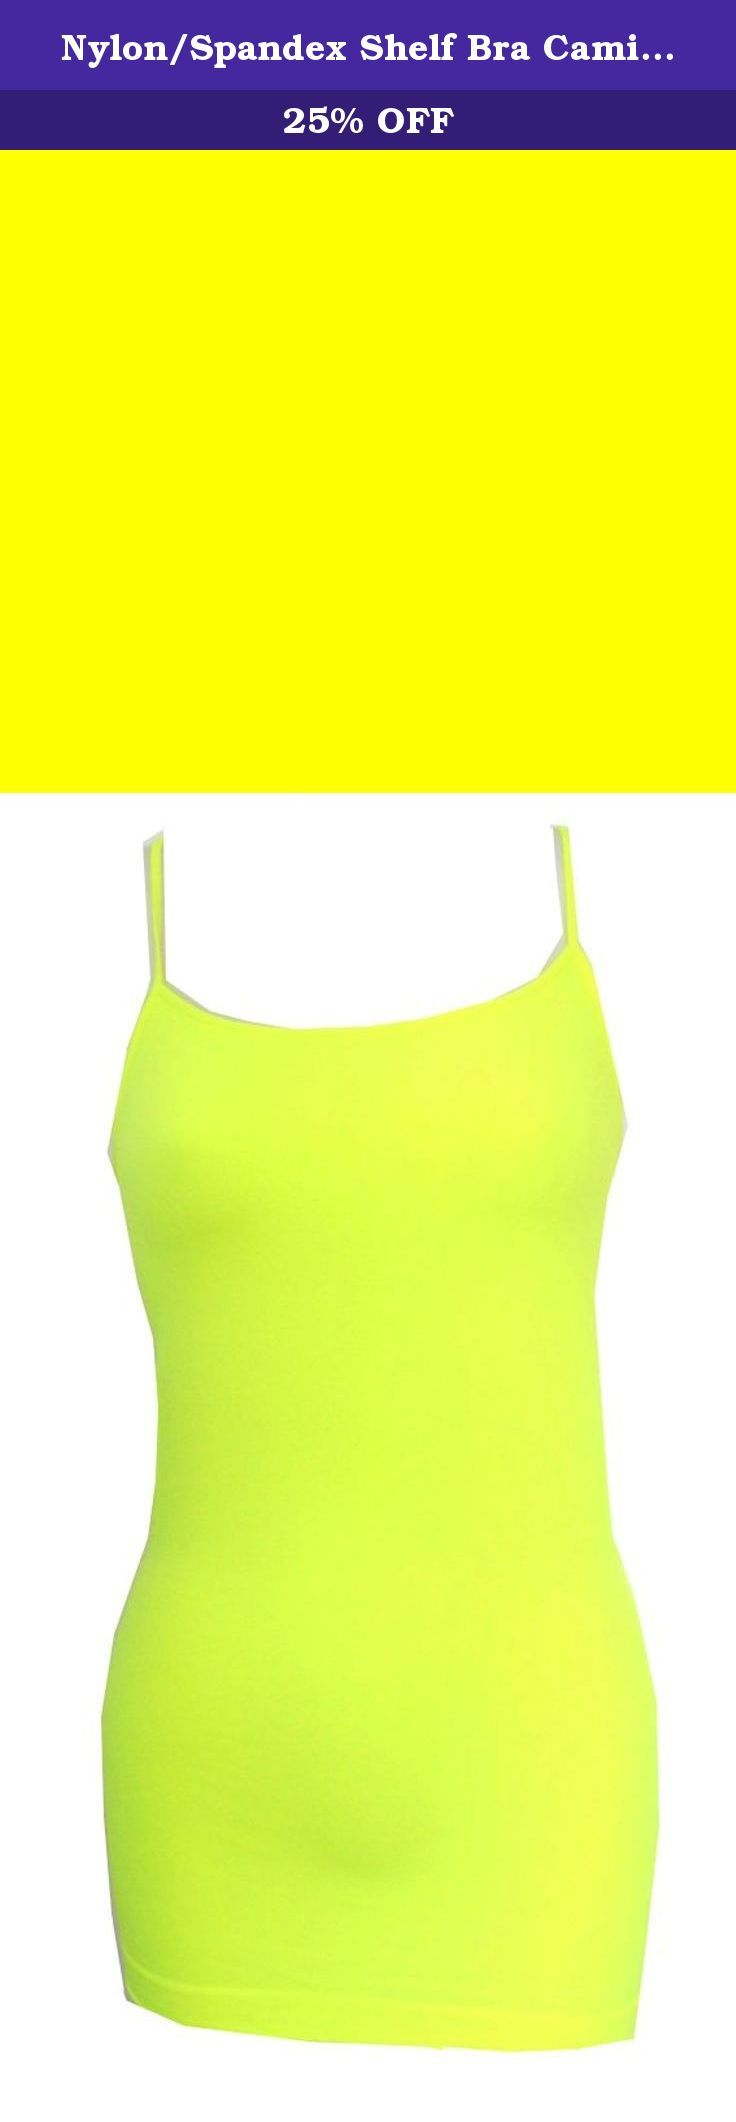 Nylon/Spandex Shelf Bra Cami-NeonYellow-L. Nylon/Spandex Shelf Bra Camisole with adjustable spaghetti straps. Wear for lingerie, swimwear or sportswear. Comfy fabric with great fit. Longer length to wear out layered or alone, or tuck in. Great as a tankini top.